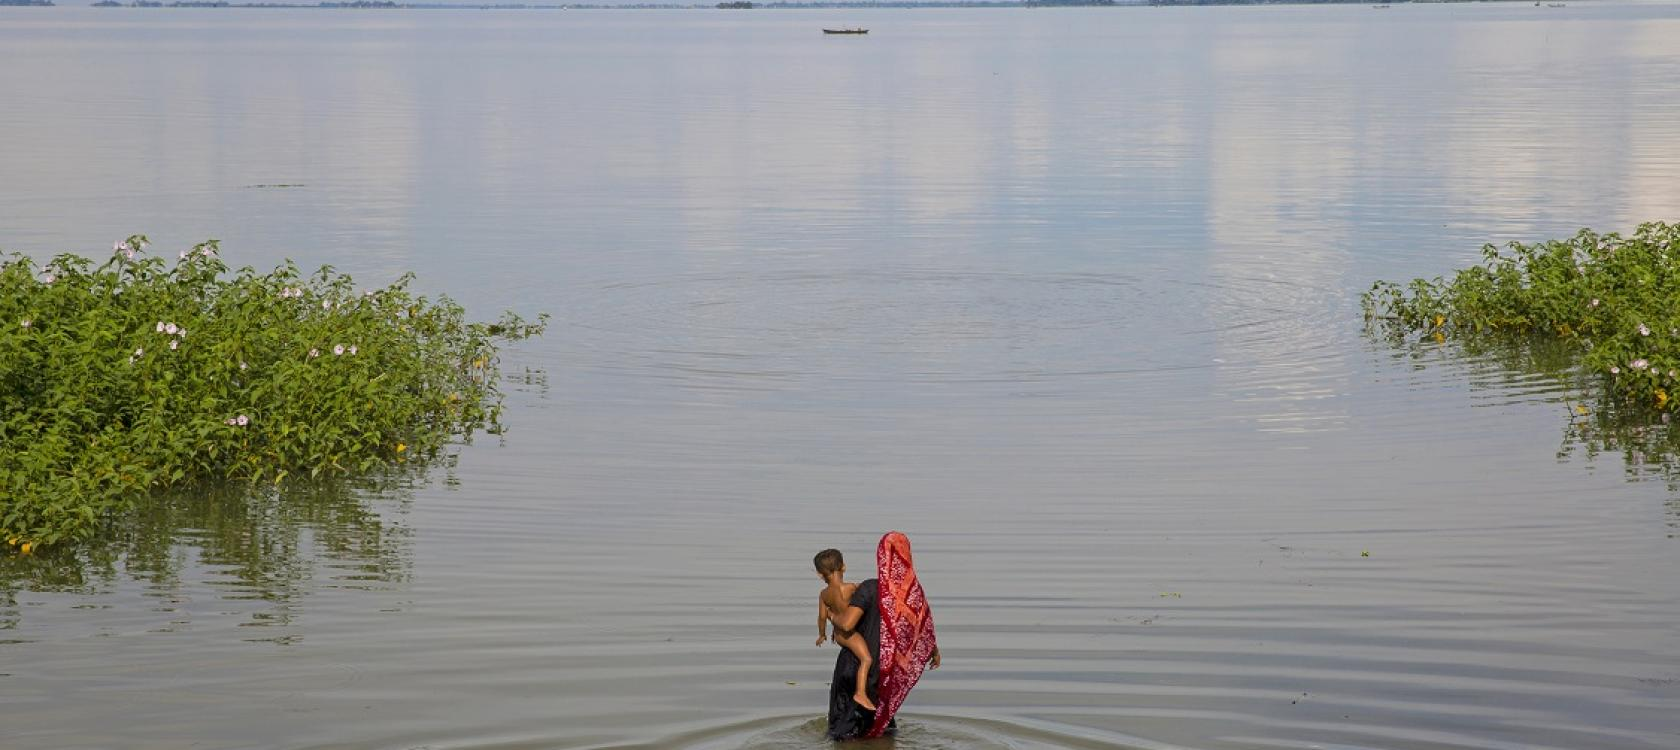 Asia, Pacific, Bangladesh, Agence Française de Développement, sea, water rise, rise of sea level